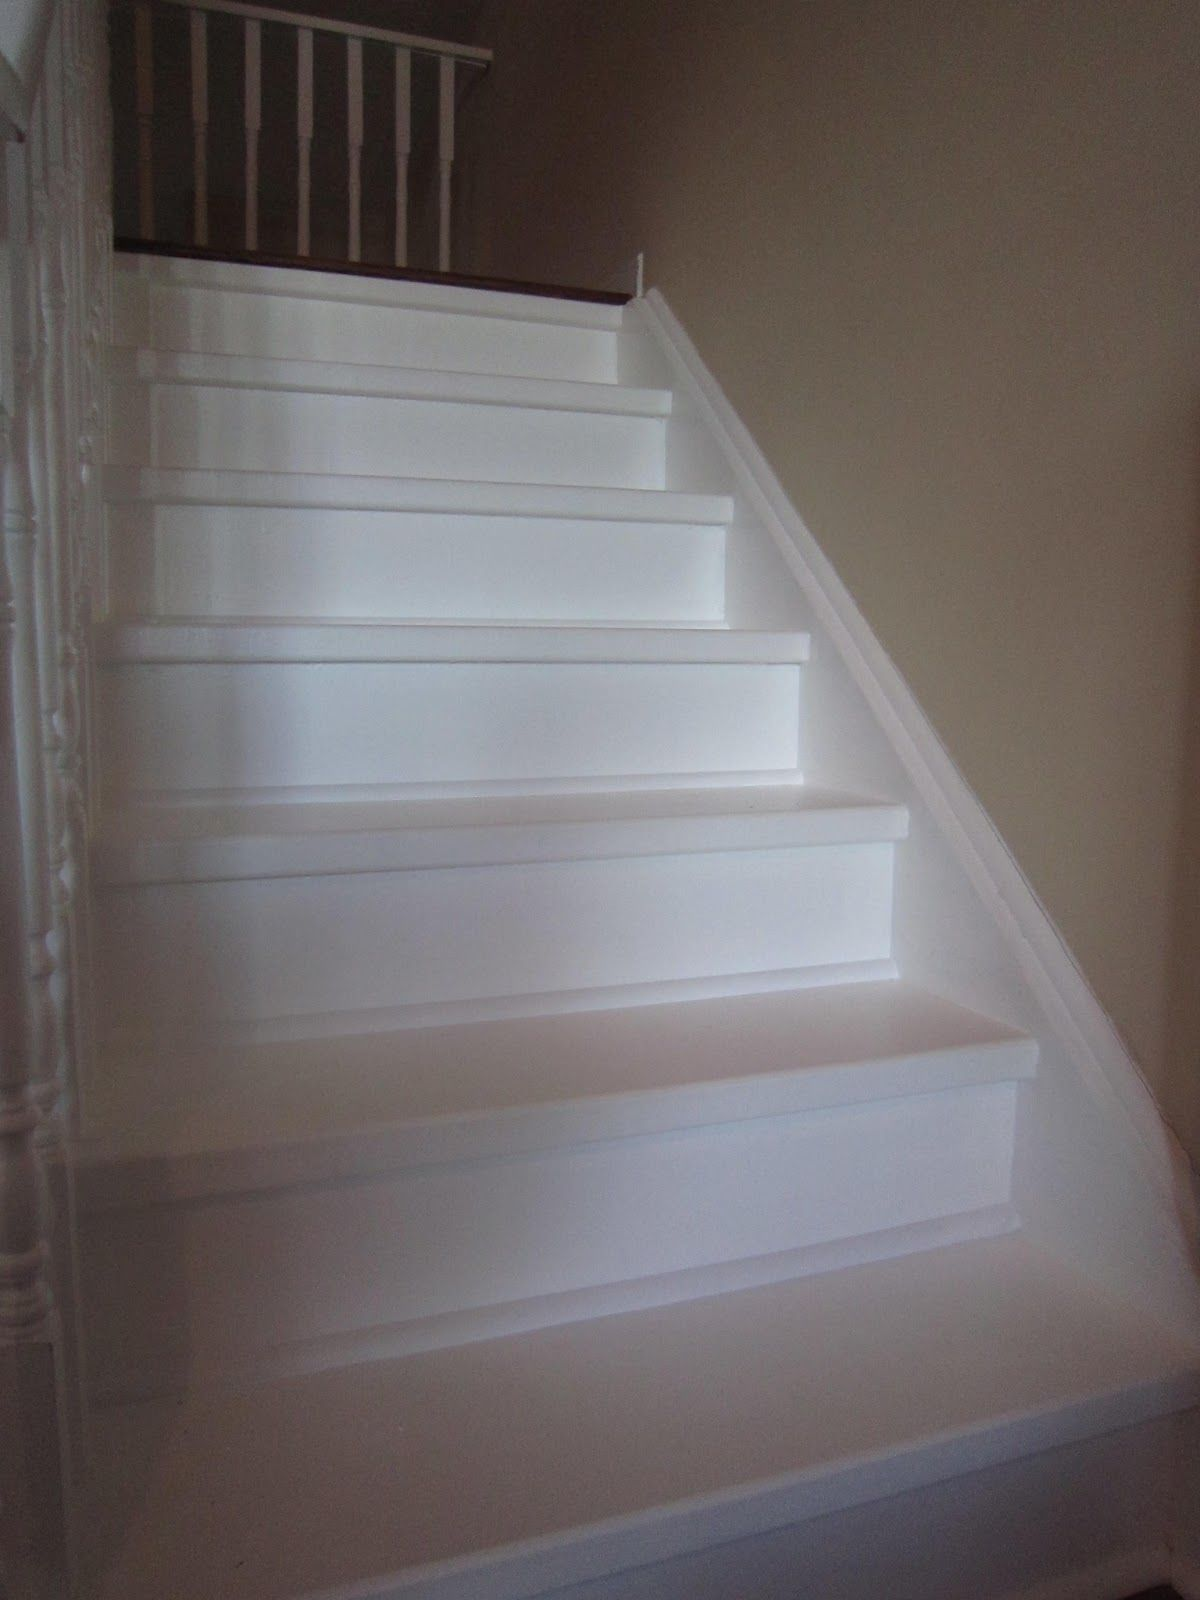 Redo Stairs Cheap Painted Pickets Stairs How To Make That Cheap Plywood Under